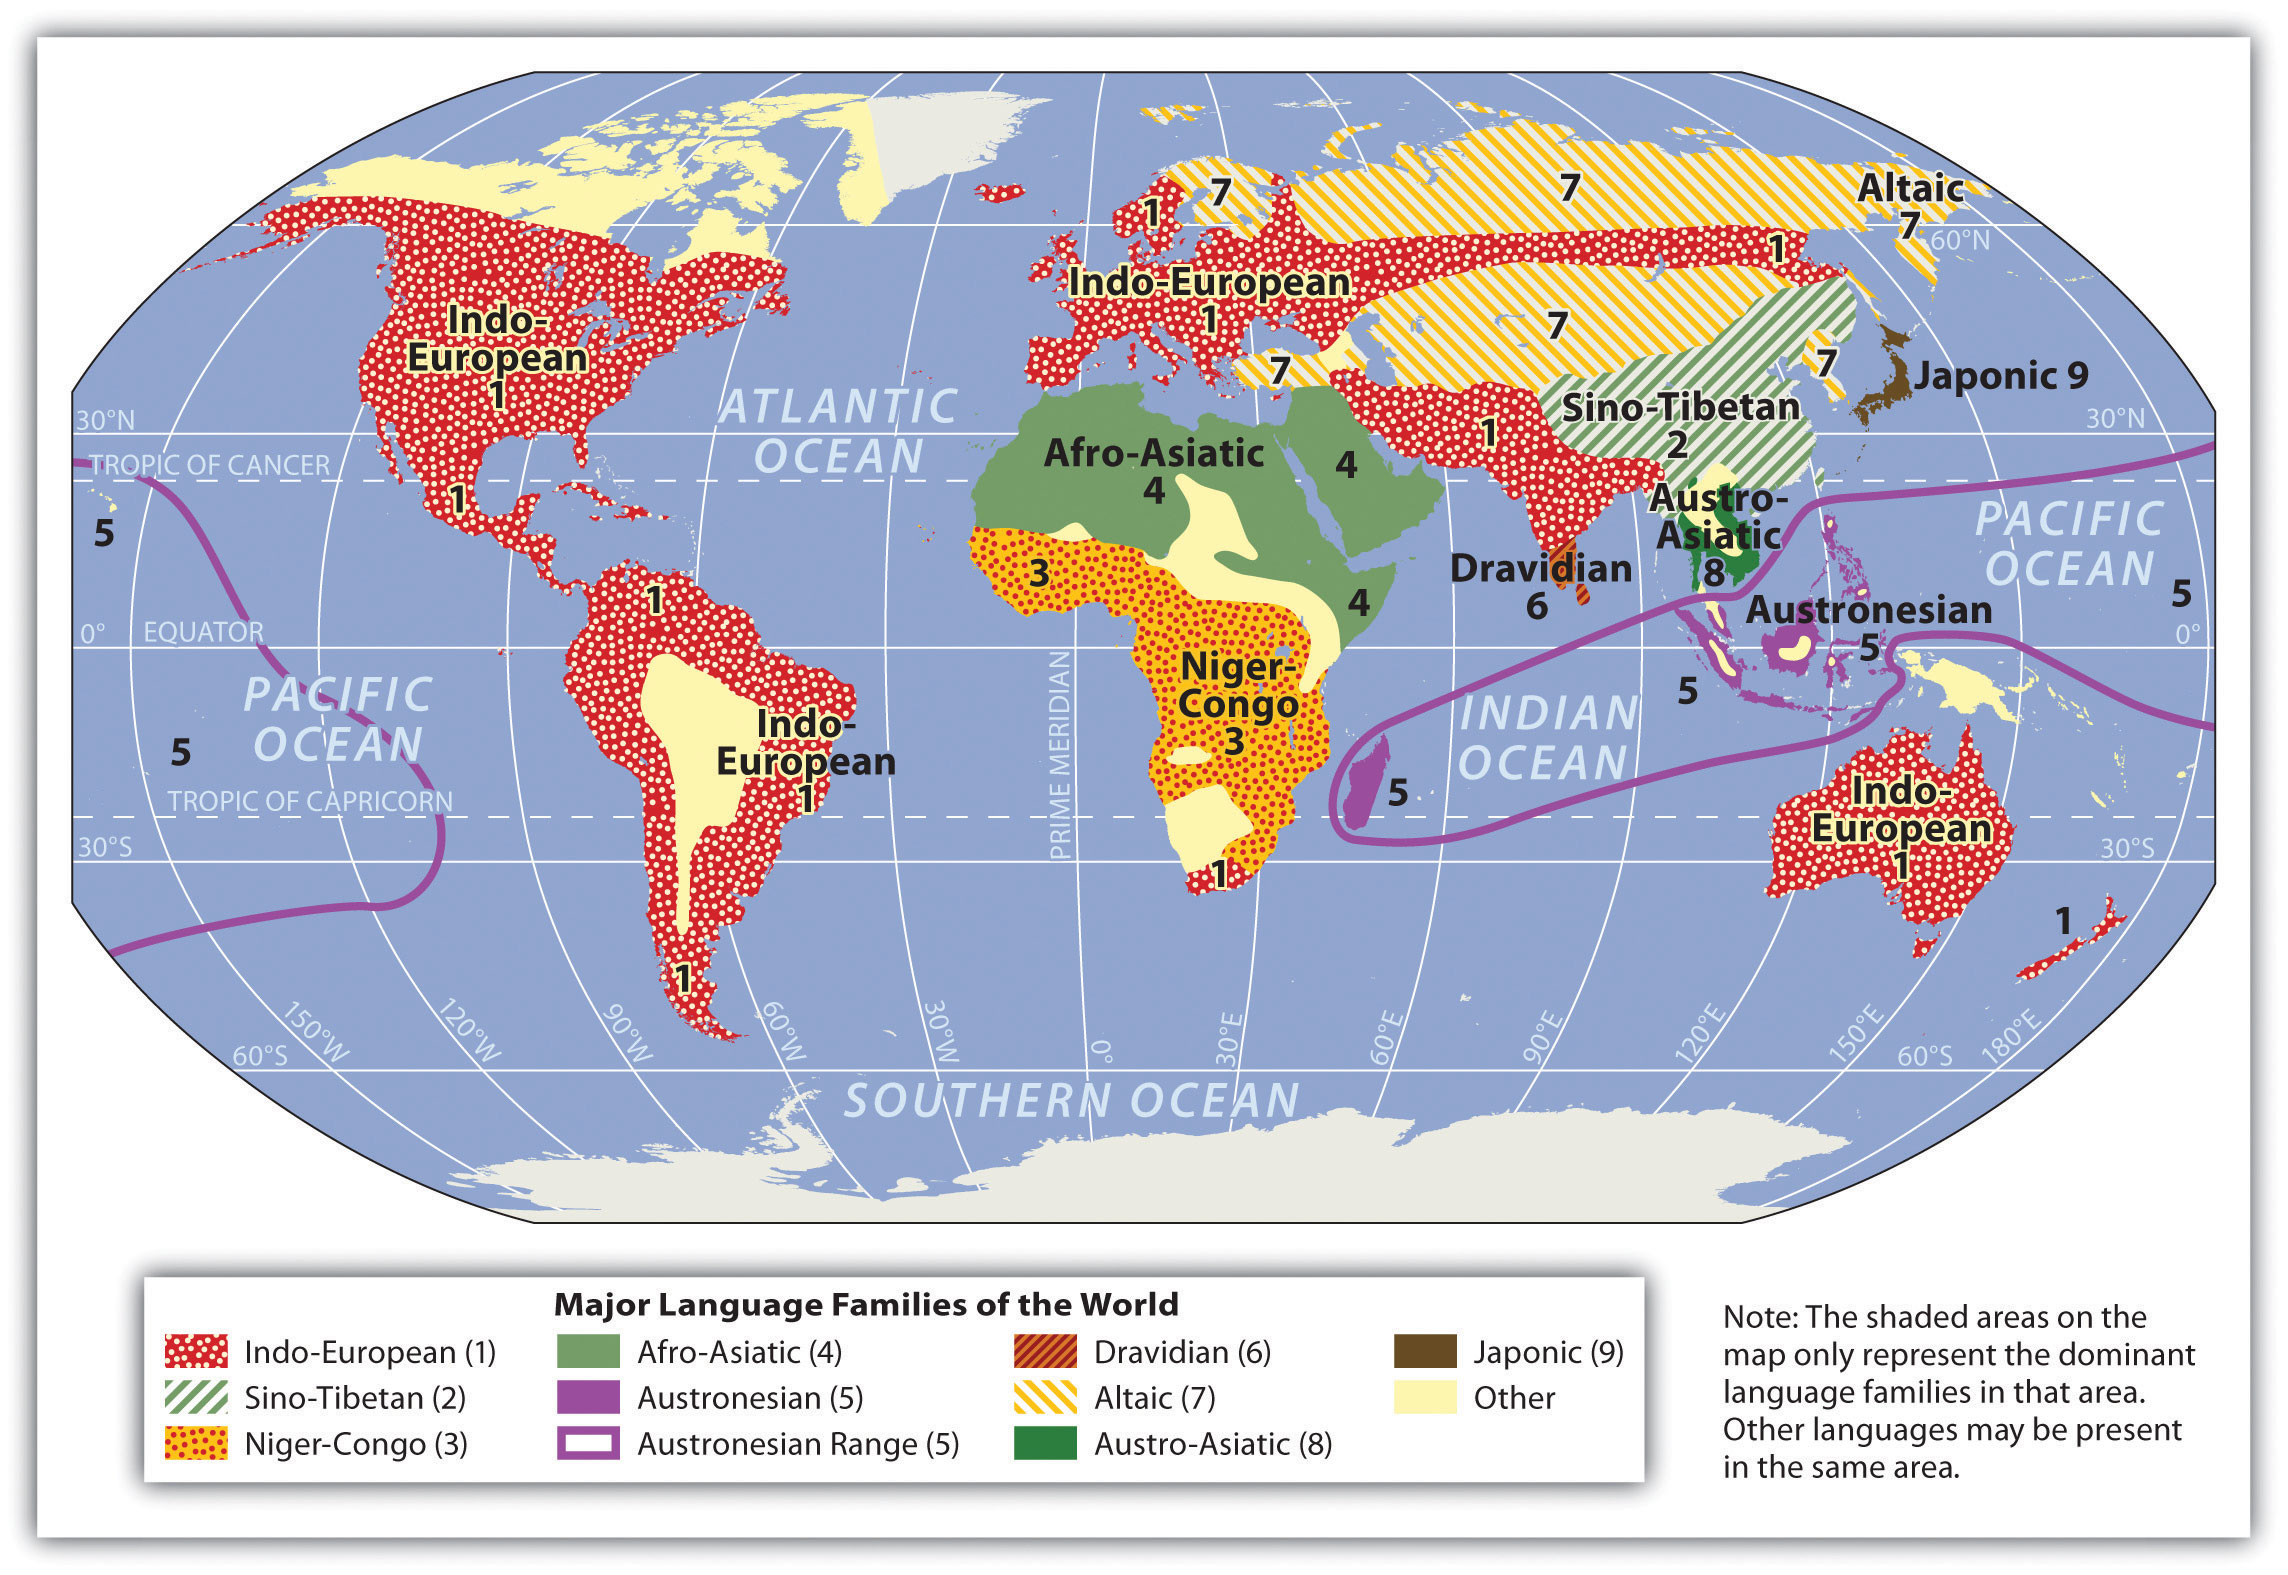 Regions of the world an overview. What defines a region? –regions.